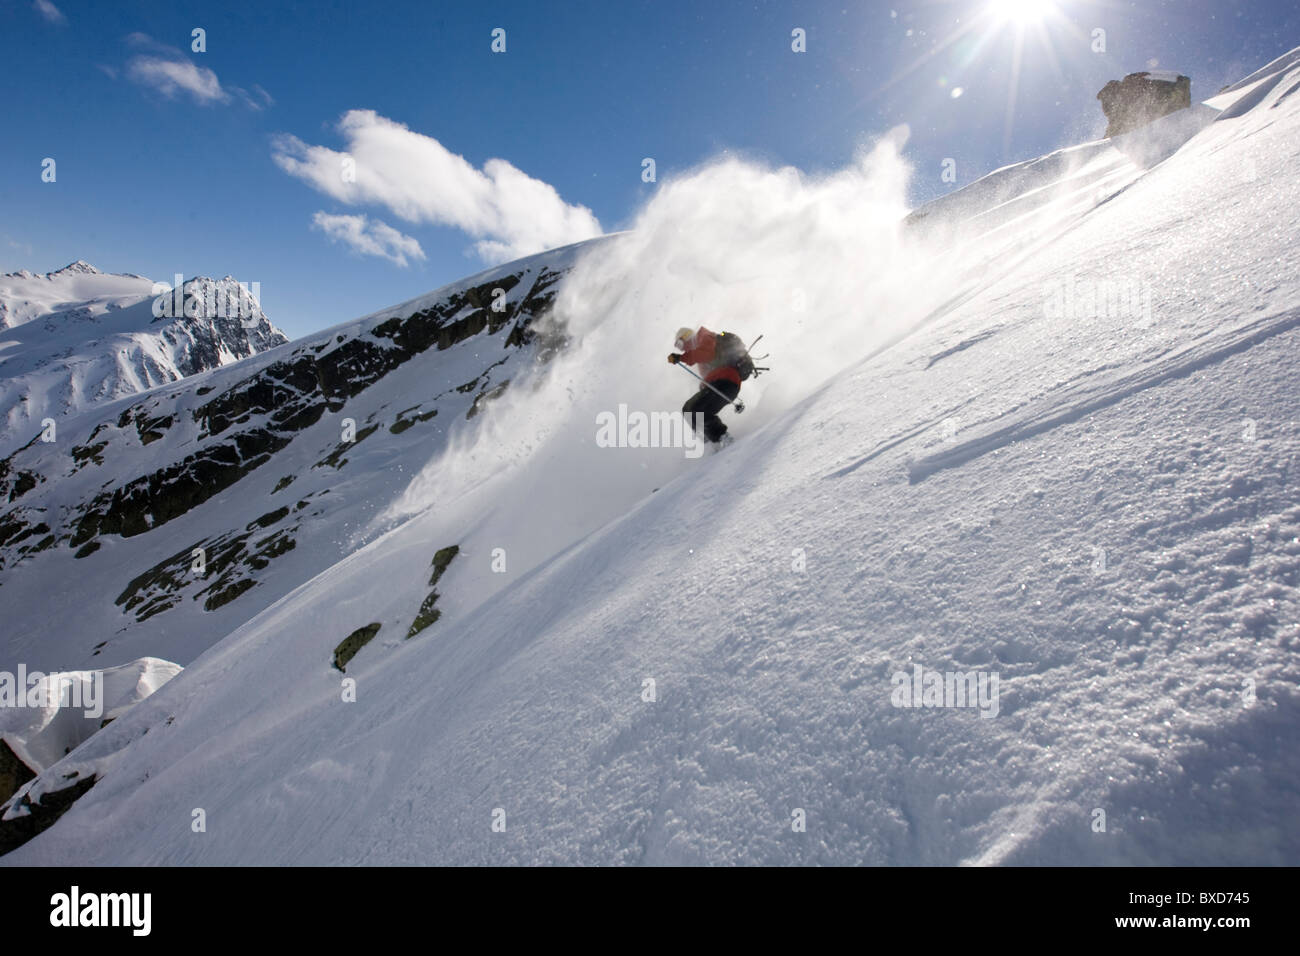 A man skiing in the Stuben, Austria backcountry. - Stock Image